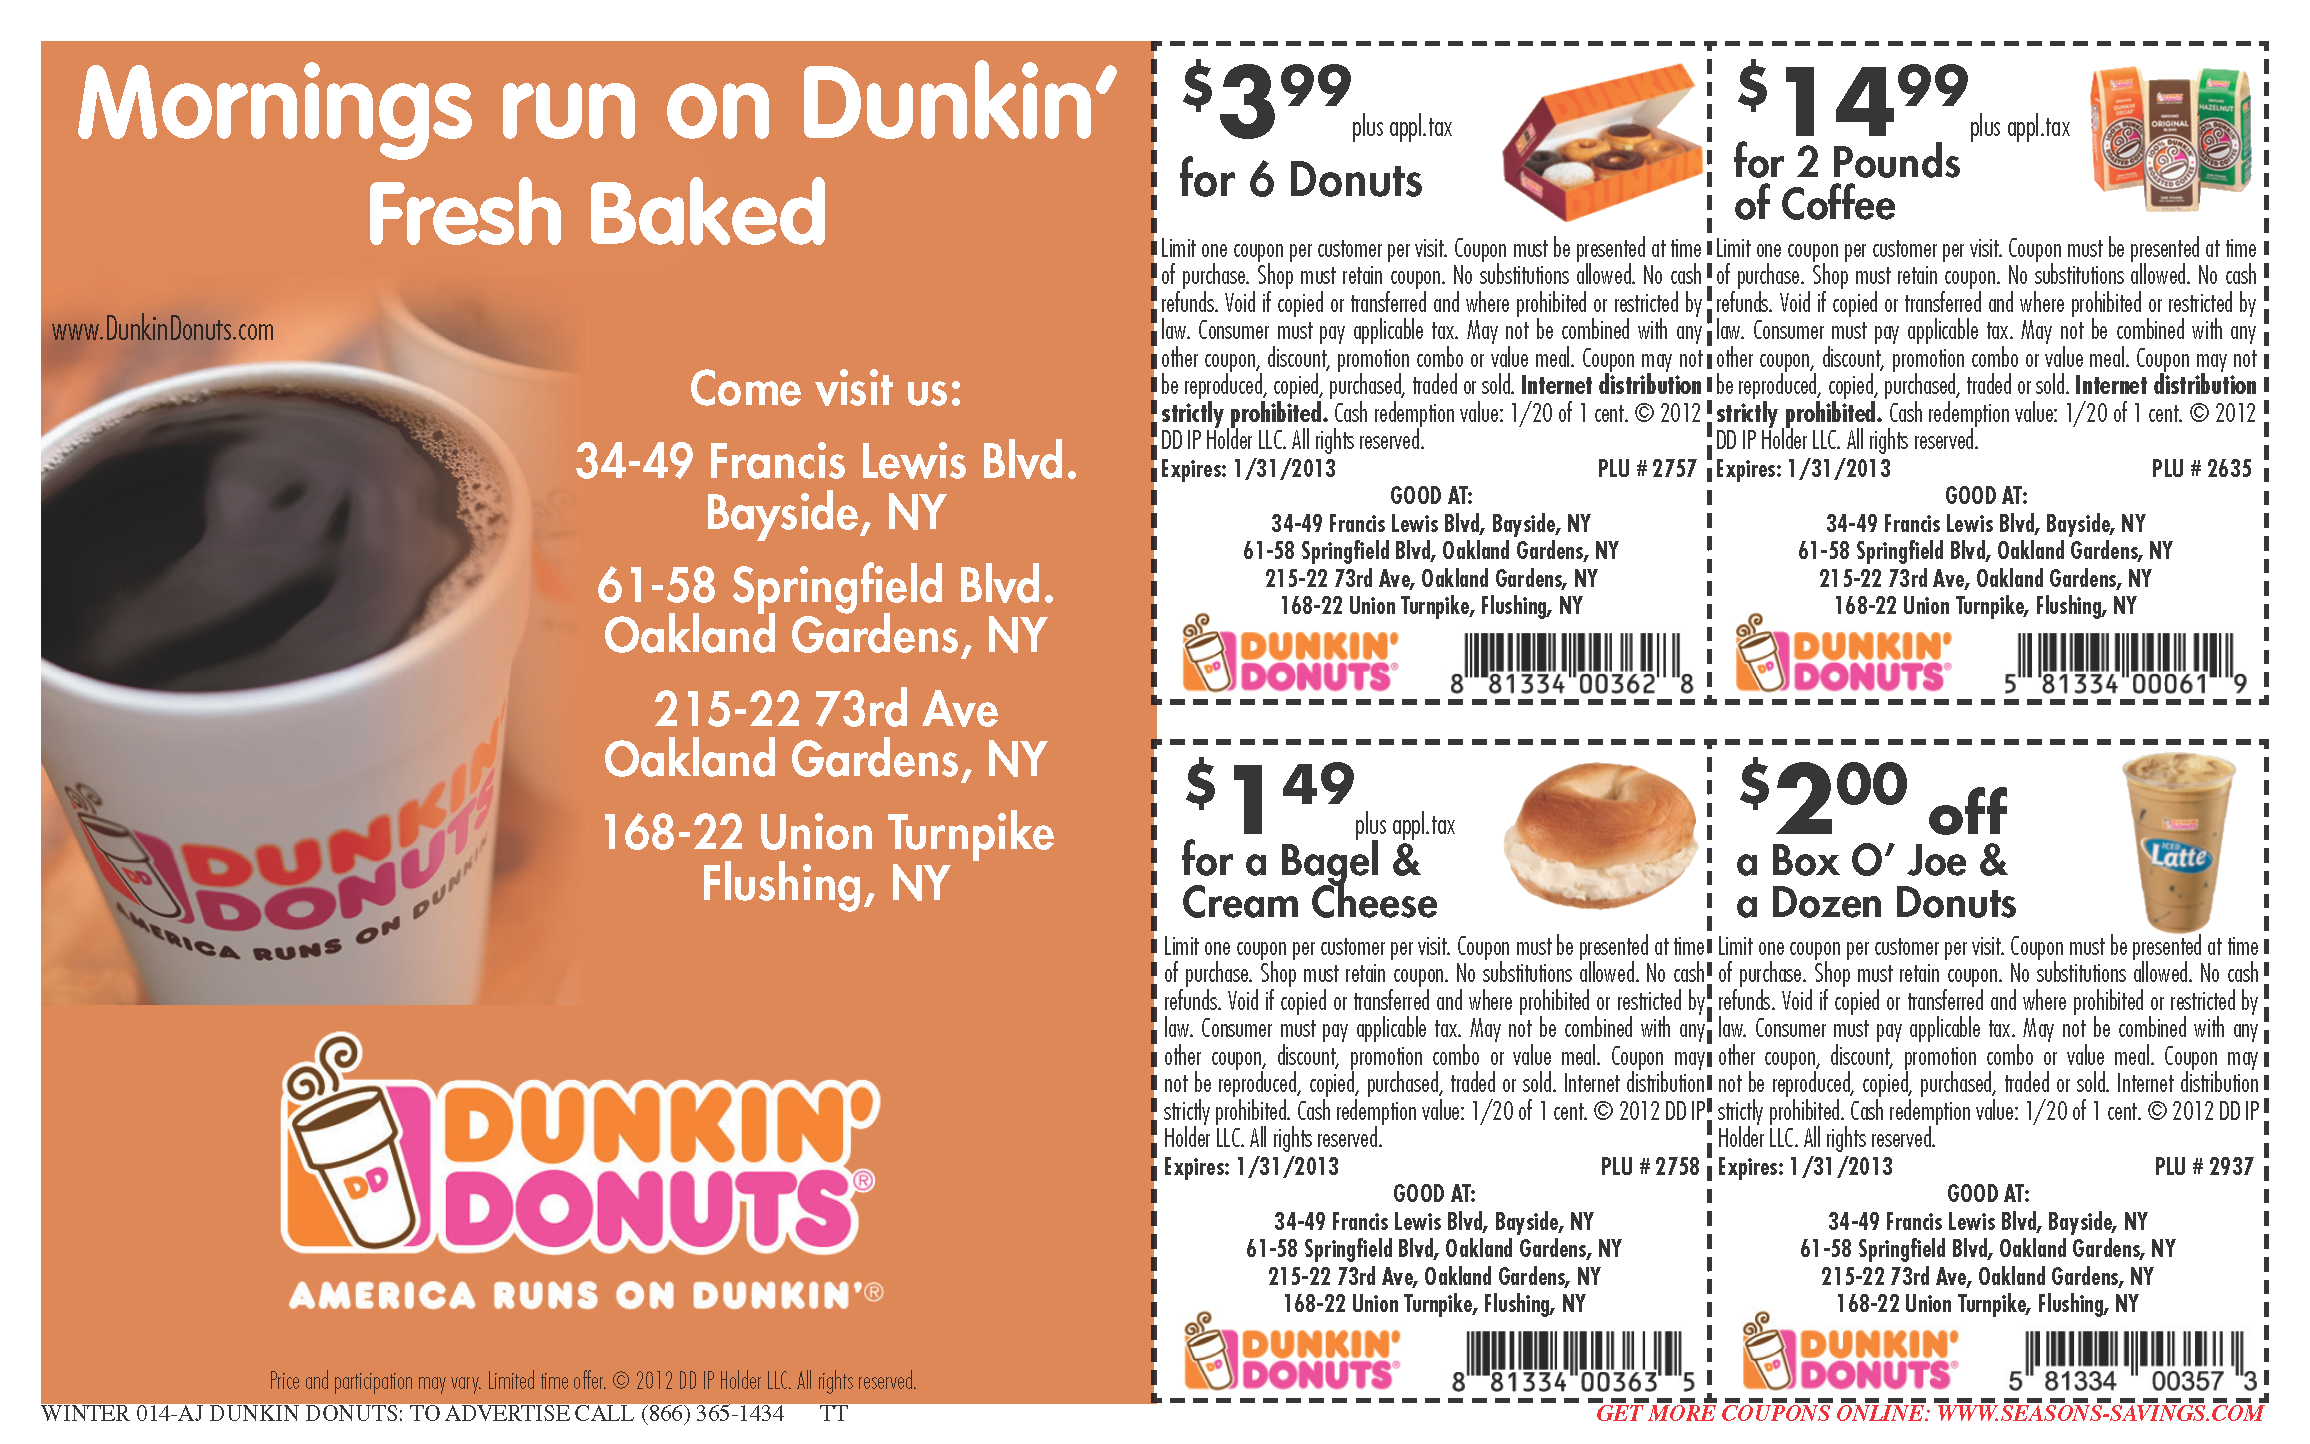 dunkin donuts coupons for mobile and print (1)